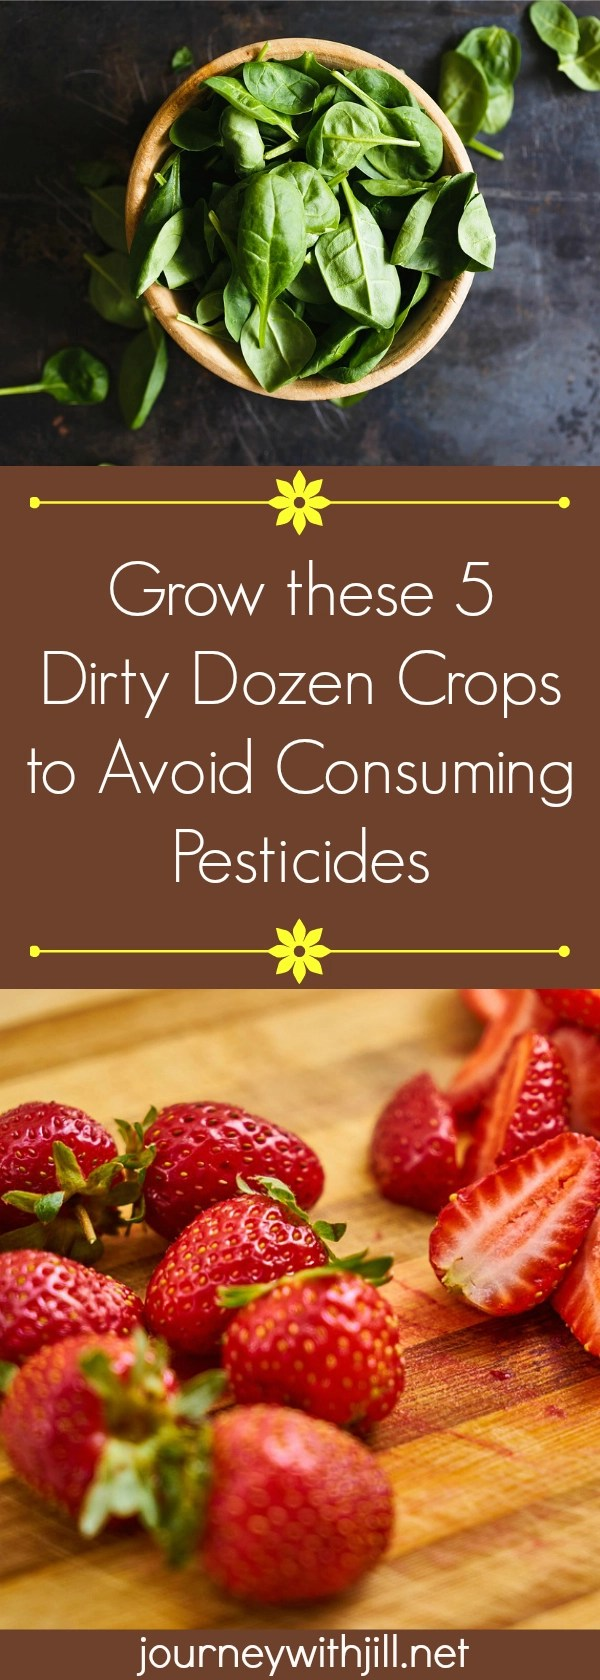 If you can't afford to purchase organic and want to limit your family's intake of pesticides, start with growing these 5 crops on the Dirty Dozen list.